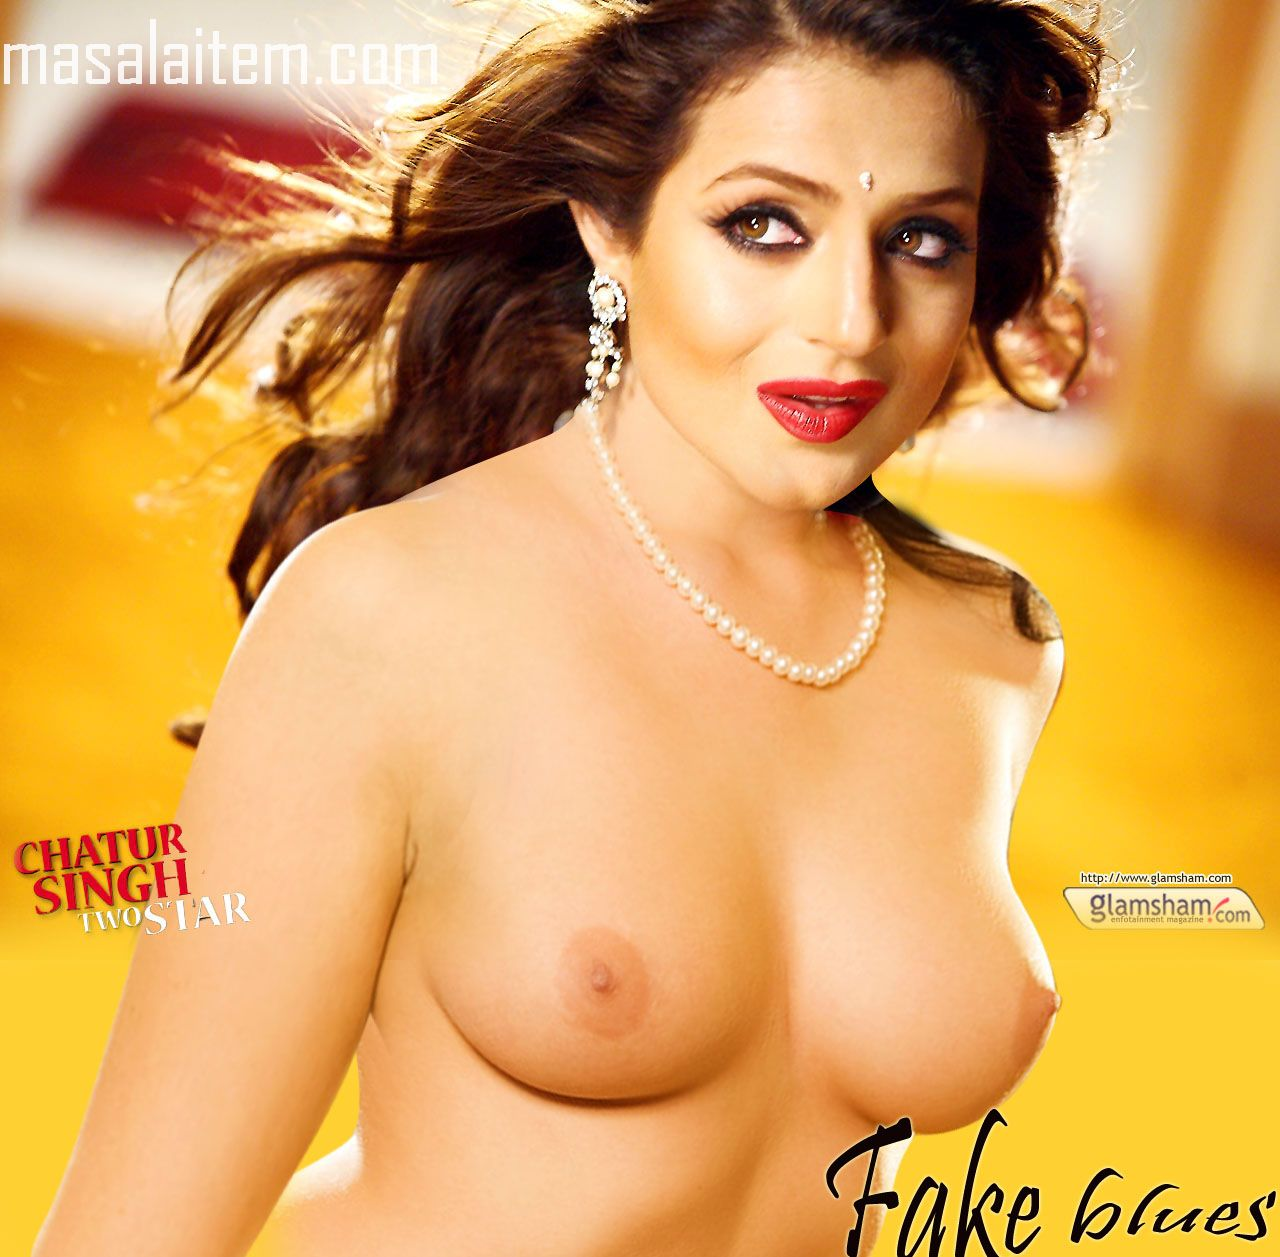 Amisha Patel breasts Naked, Nude Amisha Patel Boobs-Fake Picture ...